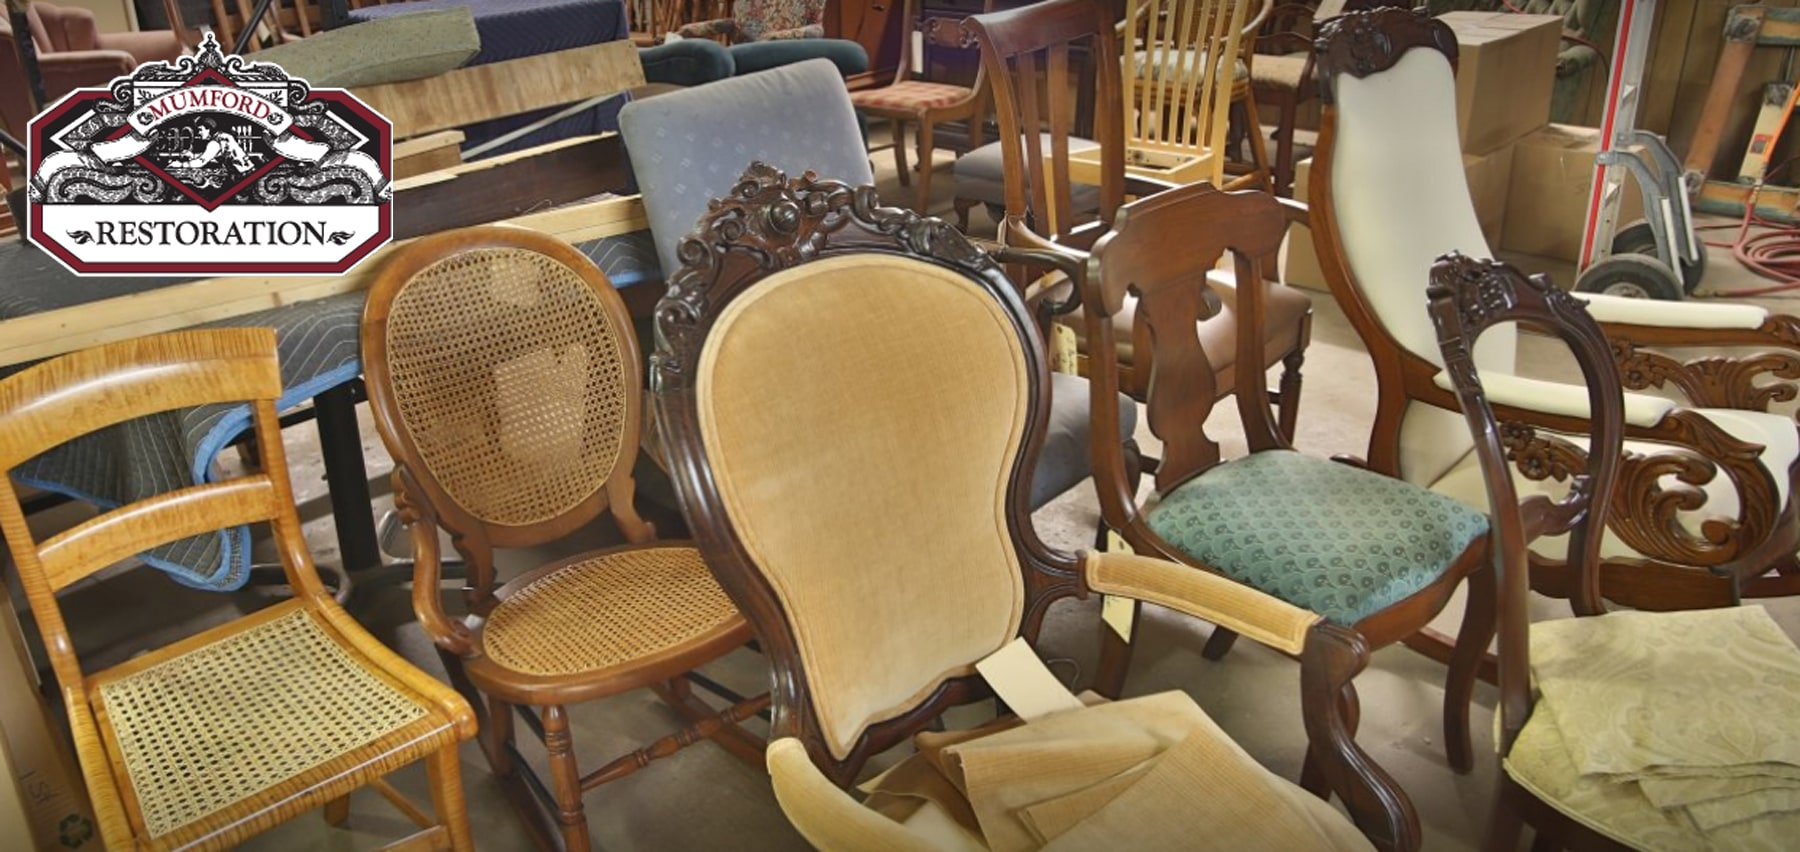 Contact Mumford Restoration today for expert chair restoration services.